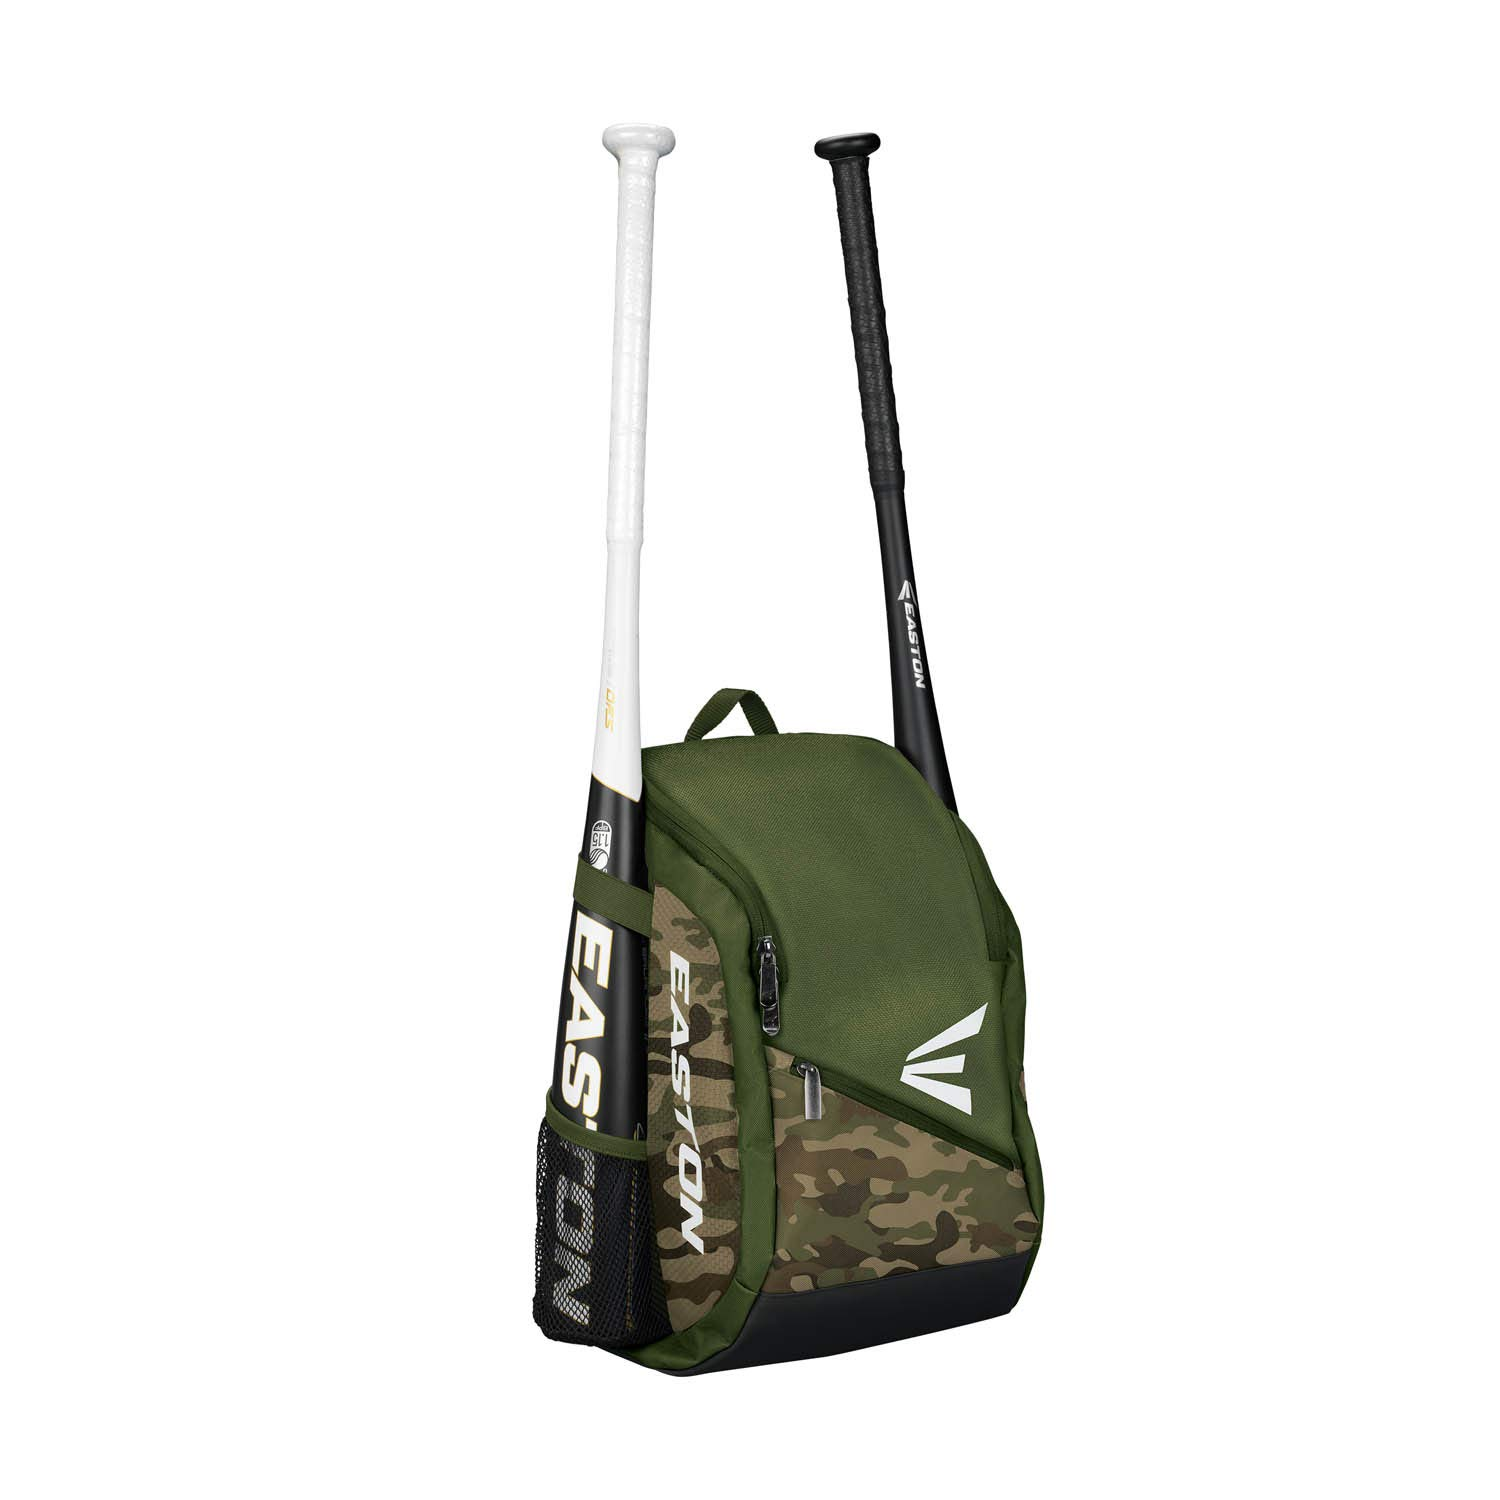 EASTON GAME READY Youth Bat & Equipment Backpack Bag | Baseball Softball | 2019 | Army Camo | 2 Bat Pockets | Vented Main Compartment | Vented Shoe Pocket | Valuables Pocket | Fence Hook by Easton